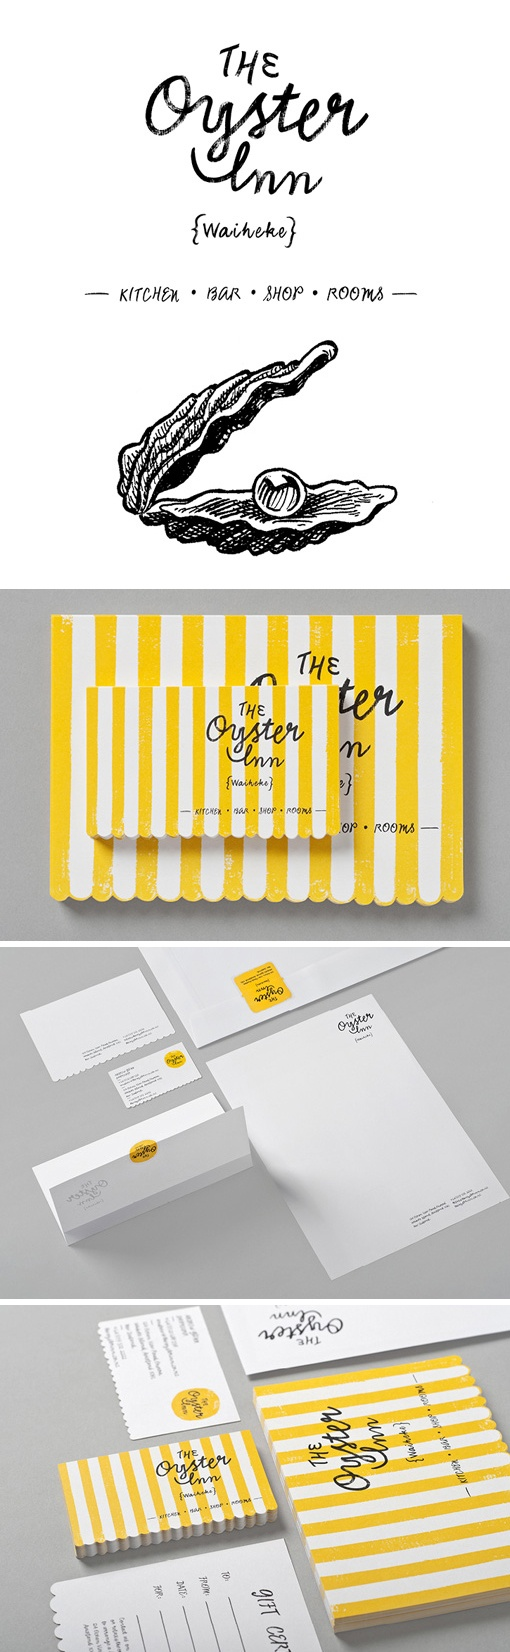 Special Group: The Oyster Inn Identity